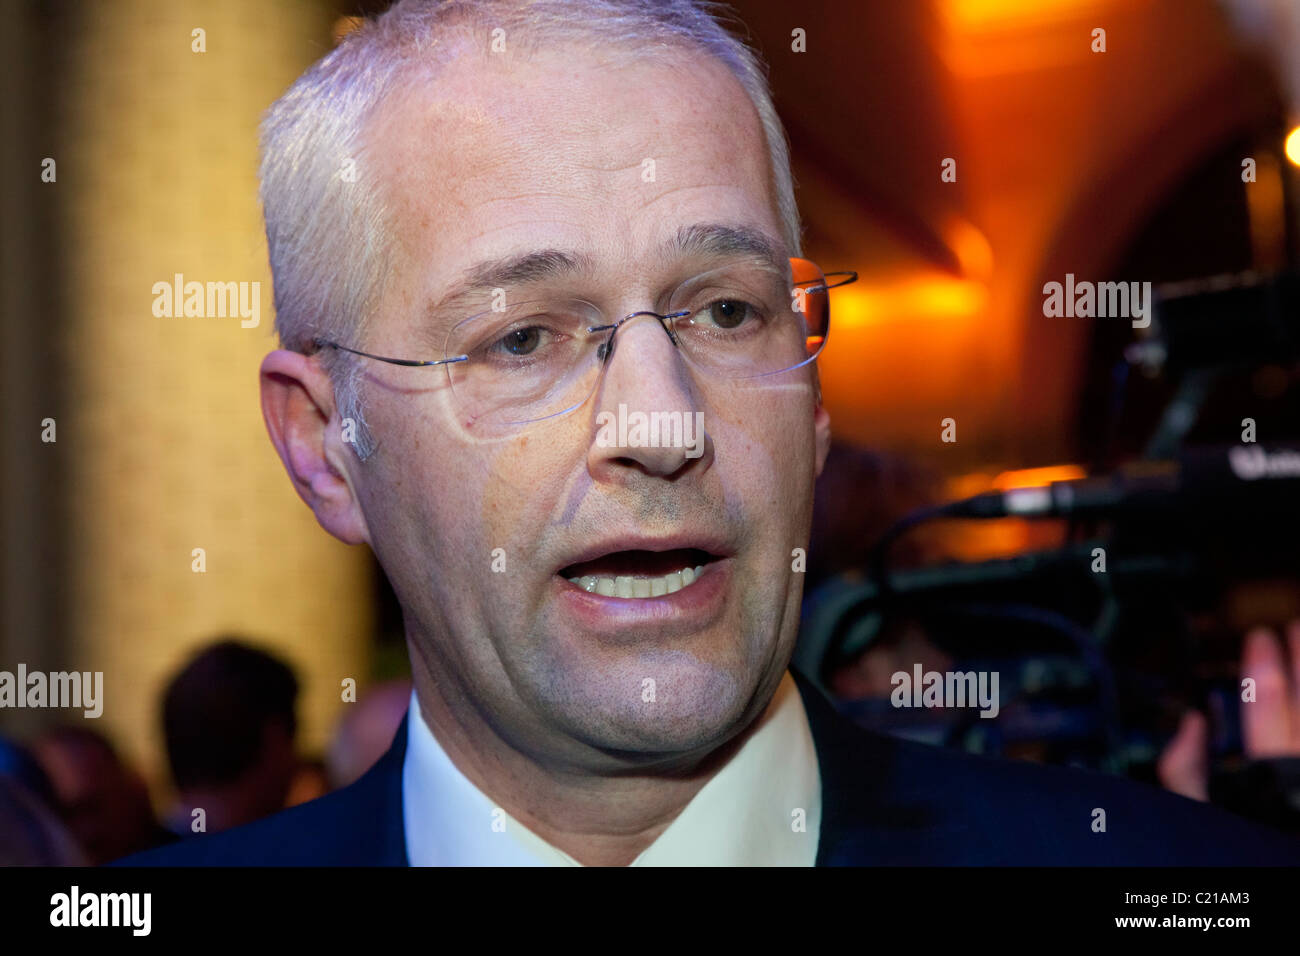 Jonathan Browning, CEO of VW Group of America - Stock Image